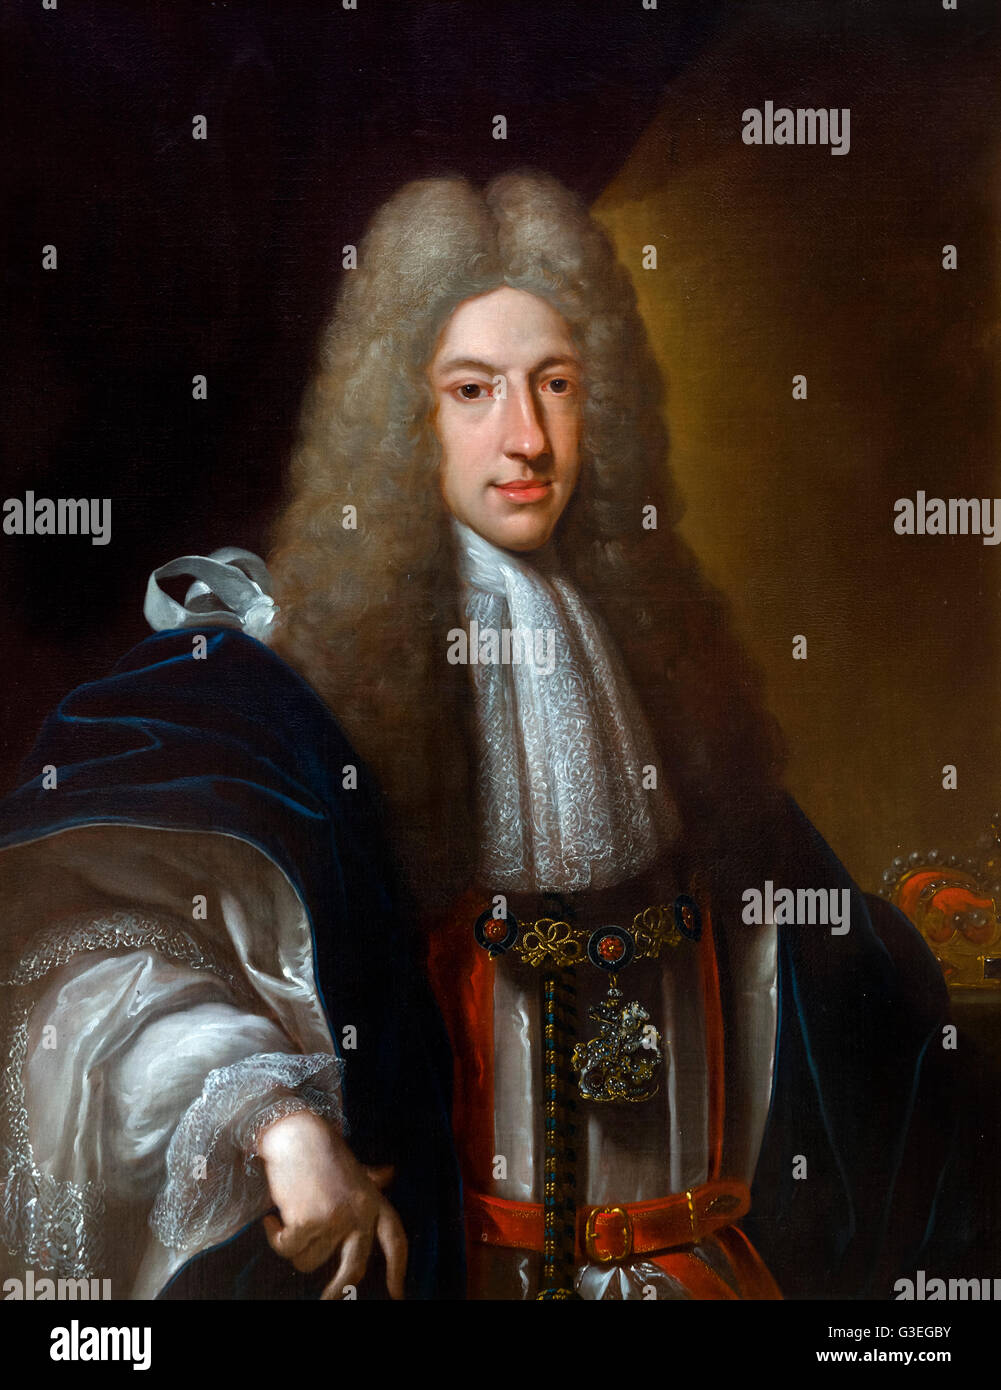 Prince James Francis Edward Stuart (1688-1766), nicknamed the Old Pretender, was the son of the deposed James II - Stock Image